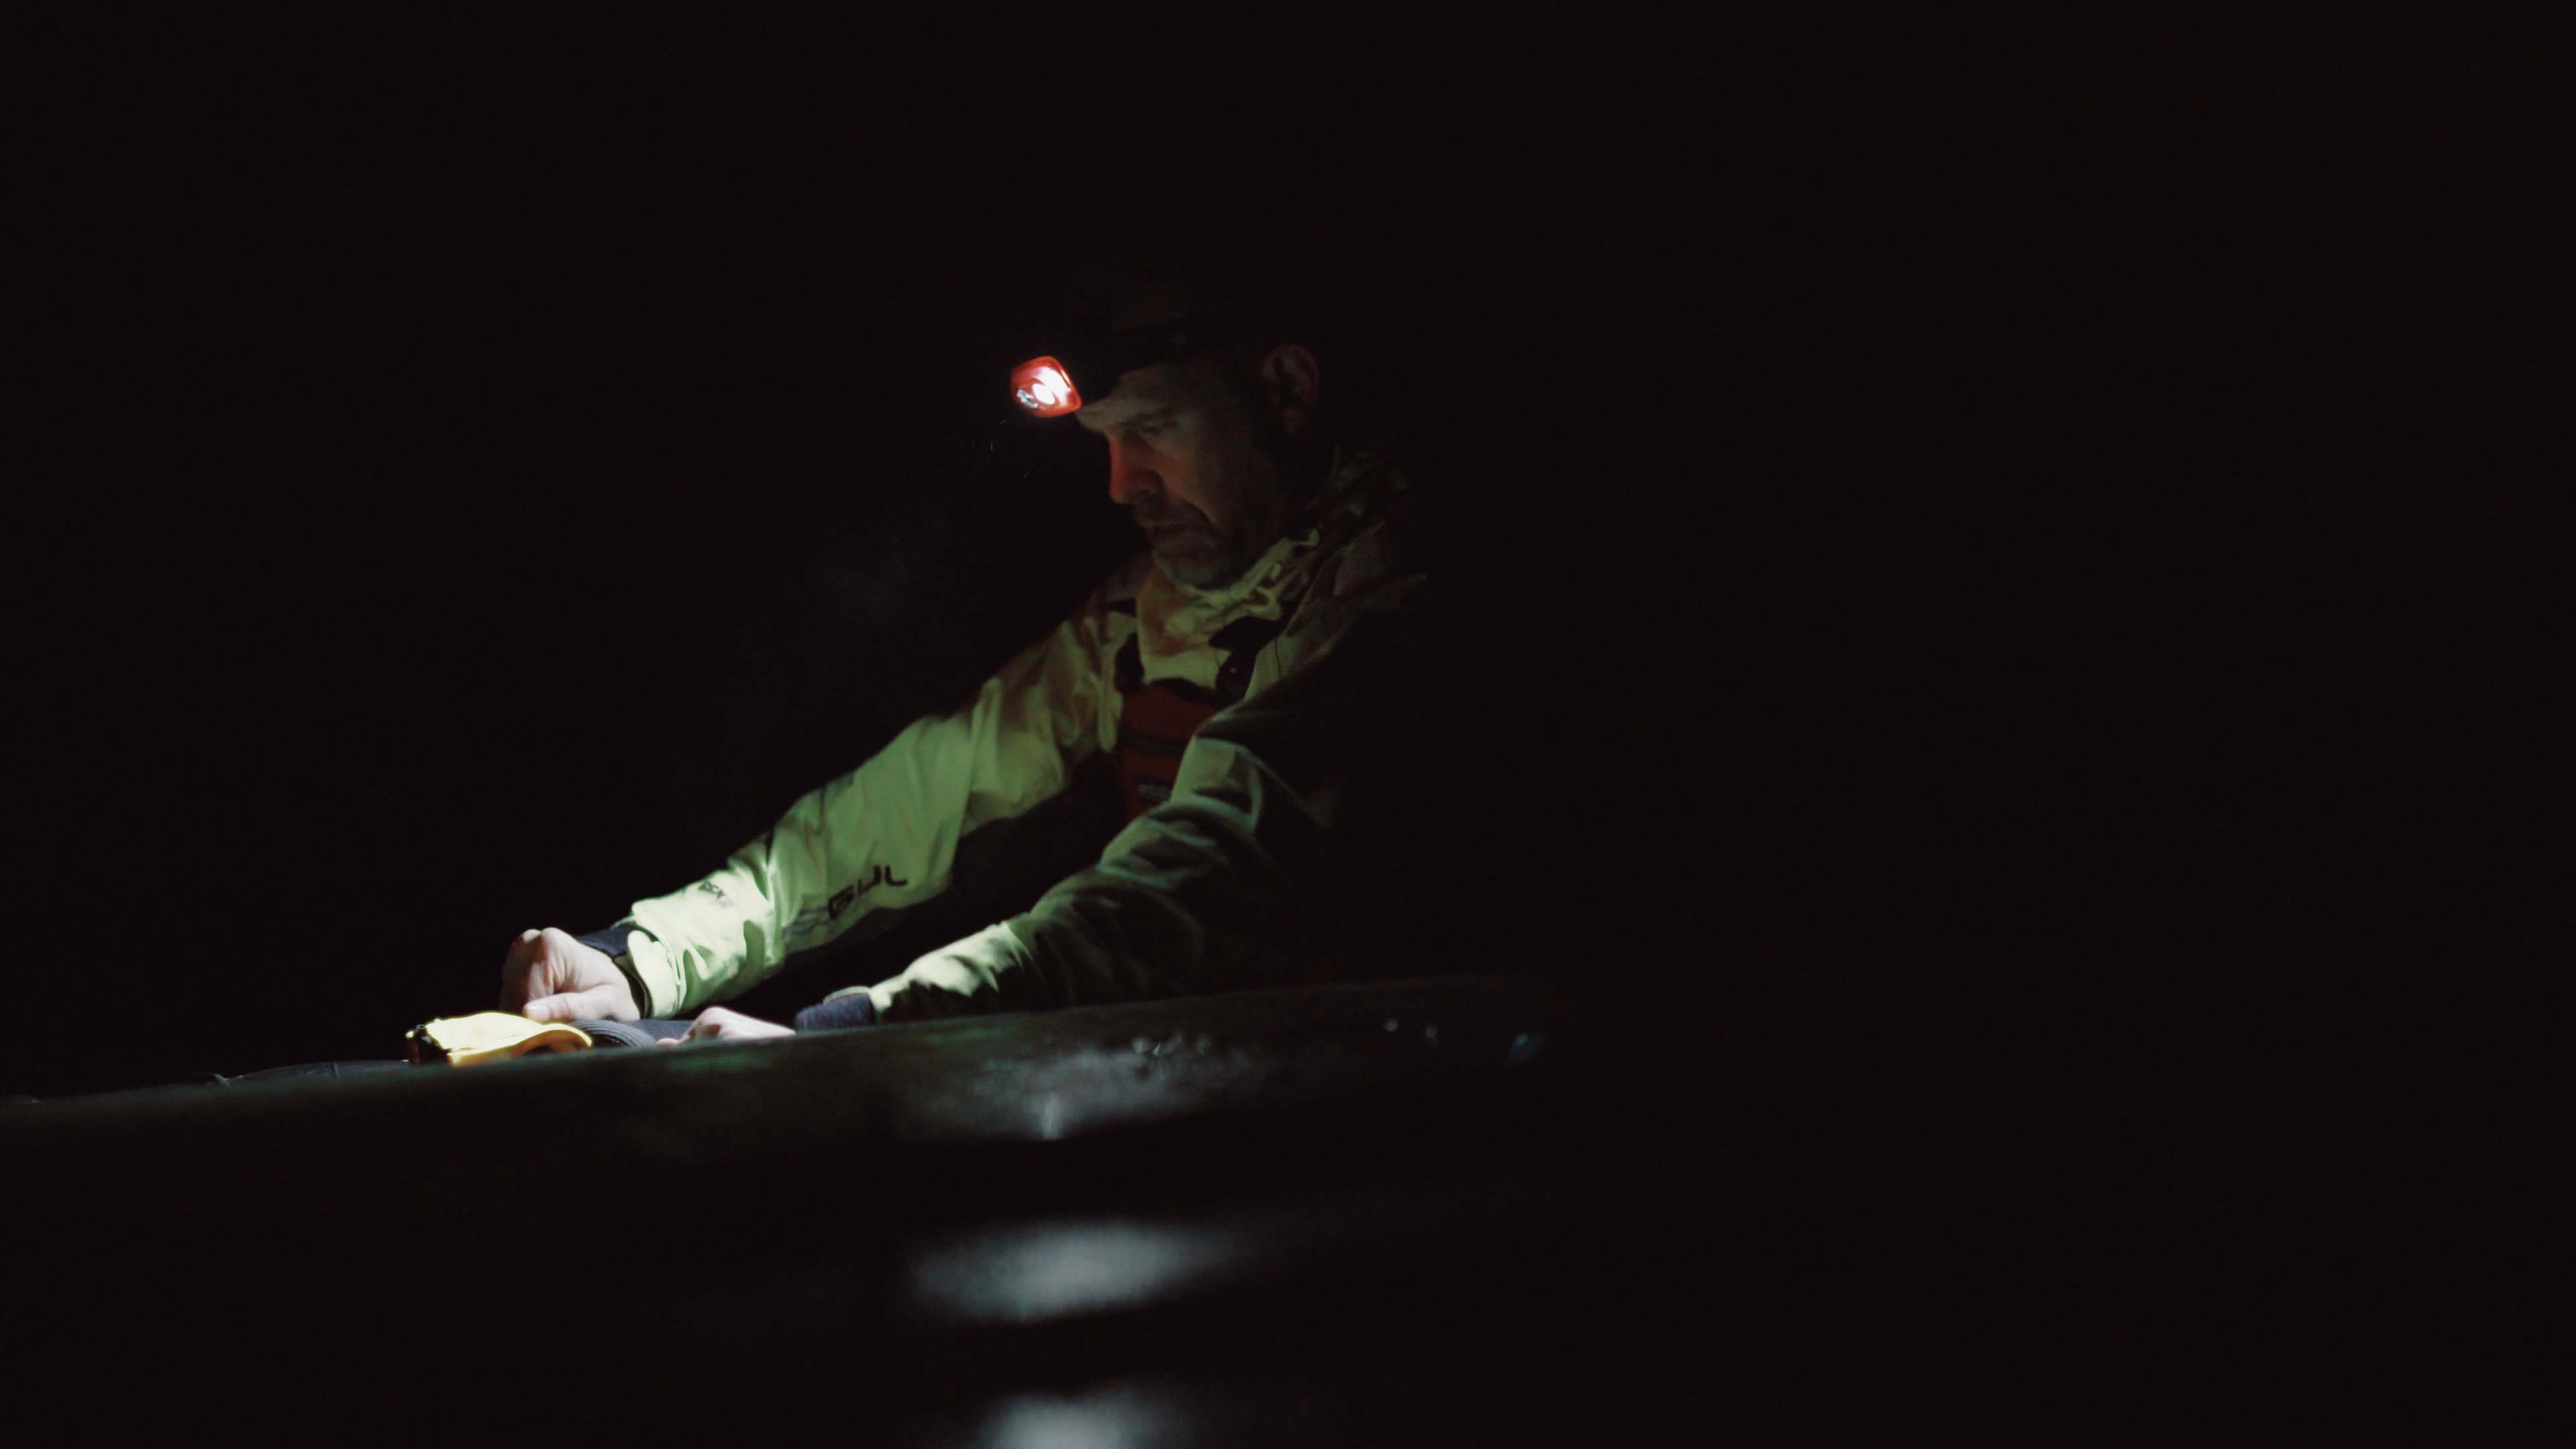 Kayaker sailing on a dark morning with his Suprabeam S3 headlamp